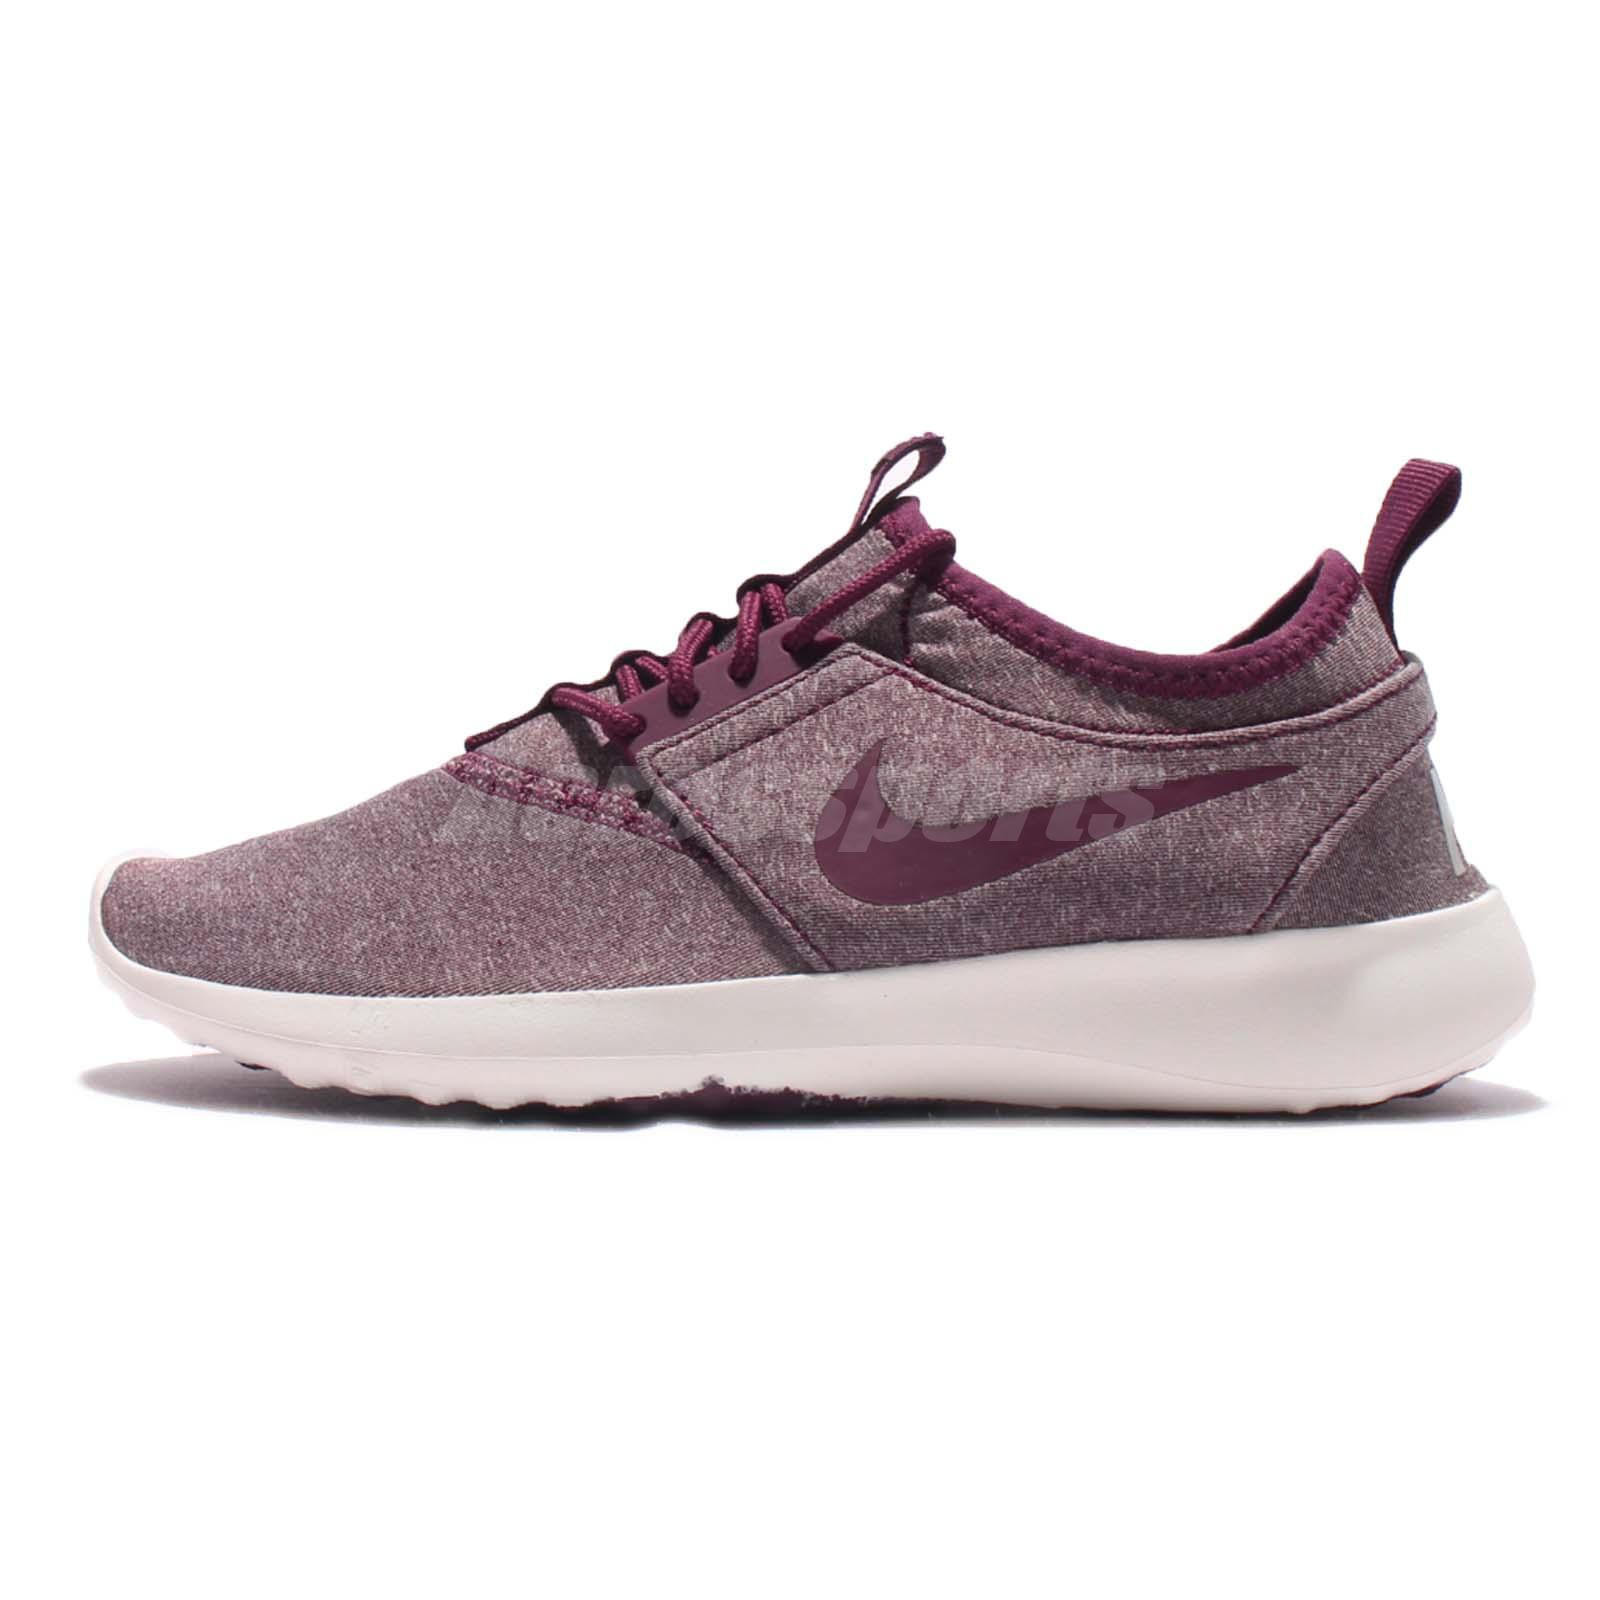 Lastest Nike Maroon Shoes For Women | The River City News